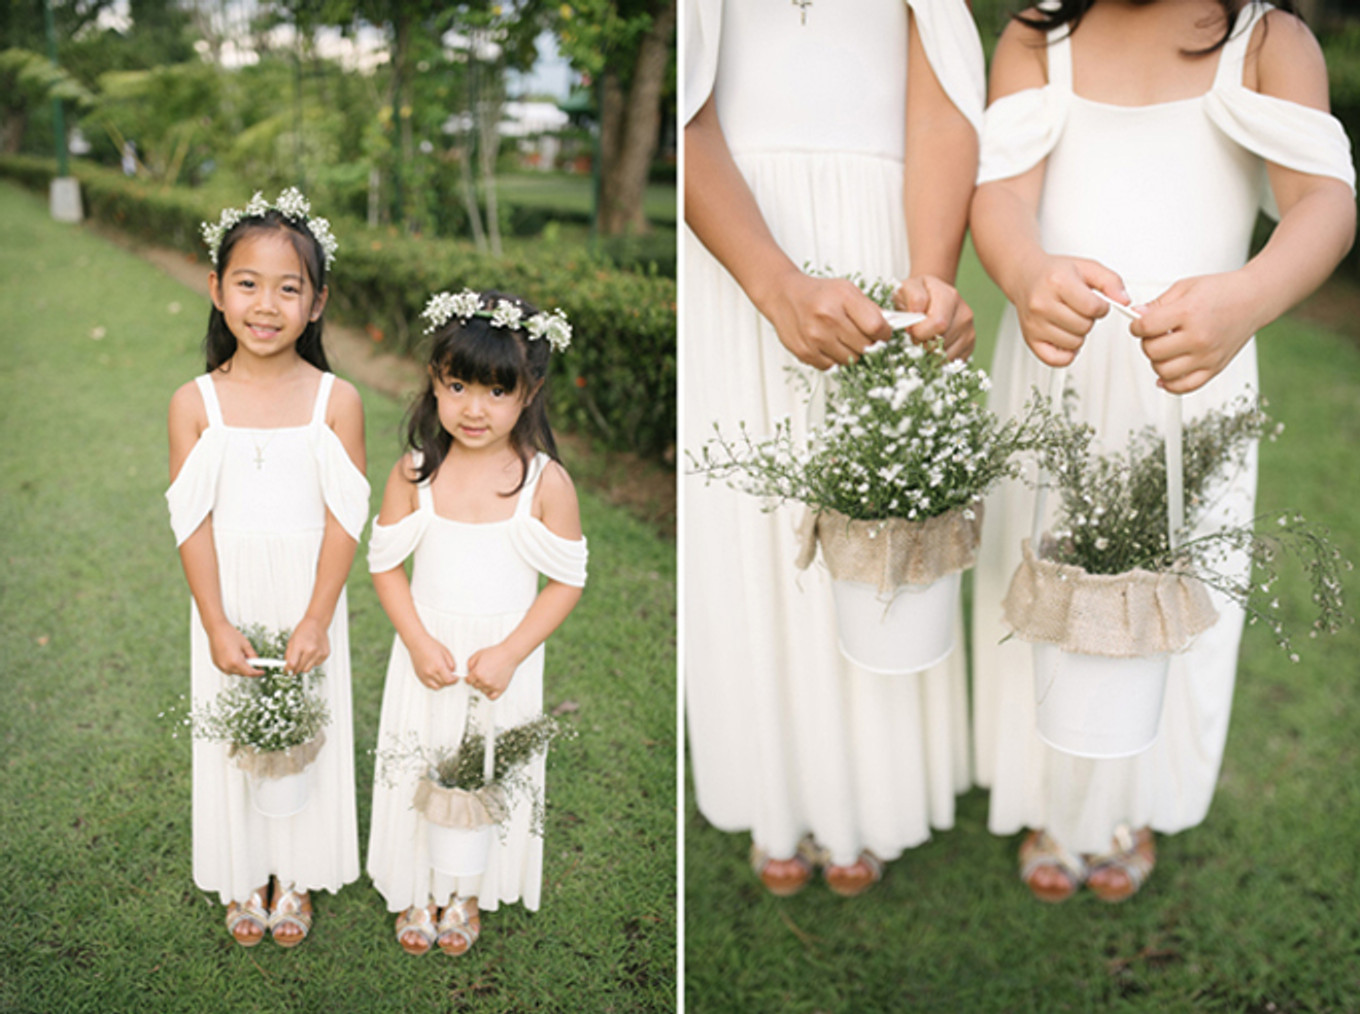 Rustic Bohemian Wedding At Casa San Pablo, Philippines. Mark Zunino Blush Wedding Dresses. Casual Wedding Dresses That Are Not White. Ivory Tower Wedding Dresses Plymouth. Purple And Champagne Wedding Dresses. Simple Wedding Dresses With Short Sleeves. Wedding Dress Style For Short Person. January Wedding Bridesmaid Dresses. Cinderella Inspired Wedding Dresses